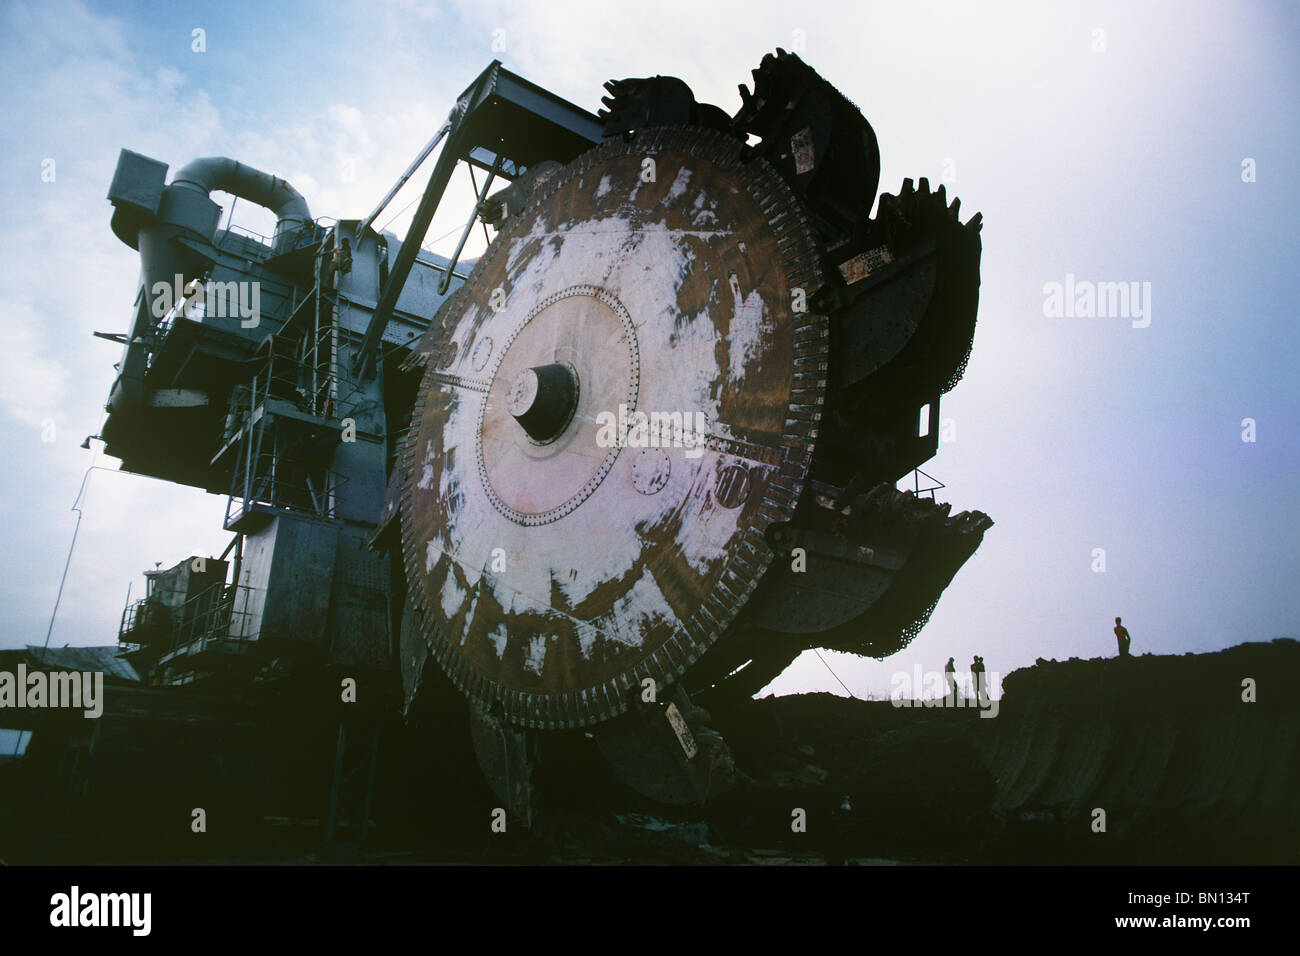 Colossal excavator used in 1979 for digging and building the Jonglei canal in the southern Sudan, a project halted - Stock Image